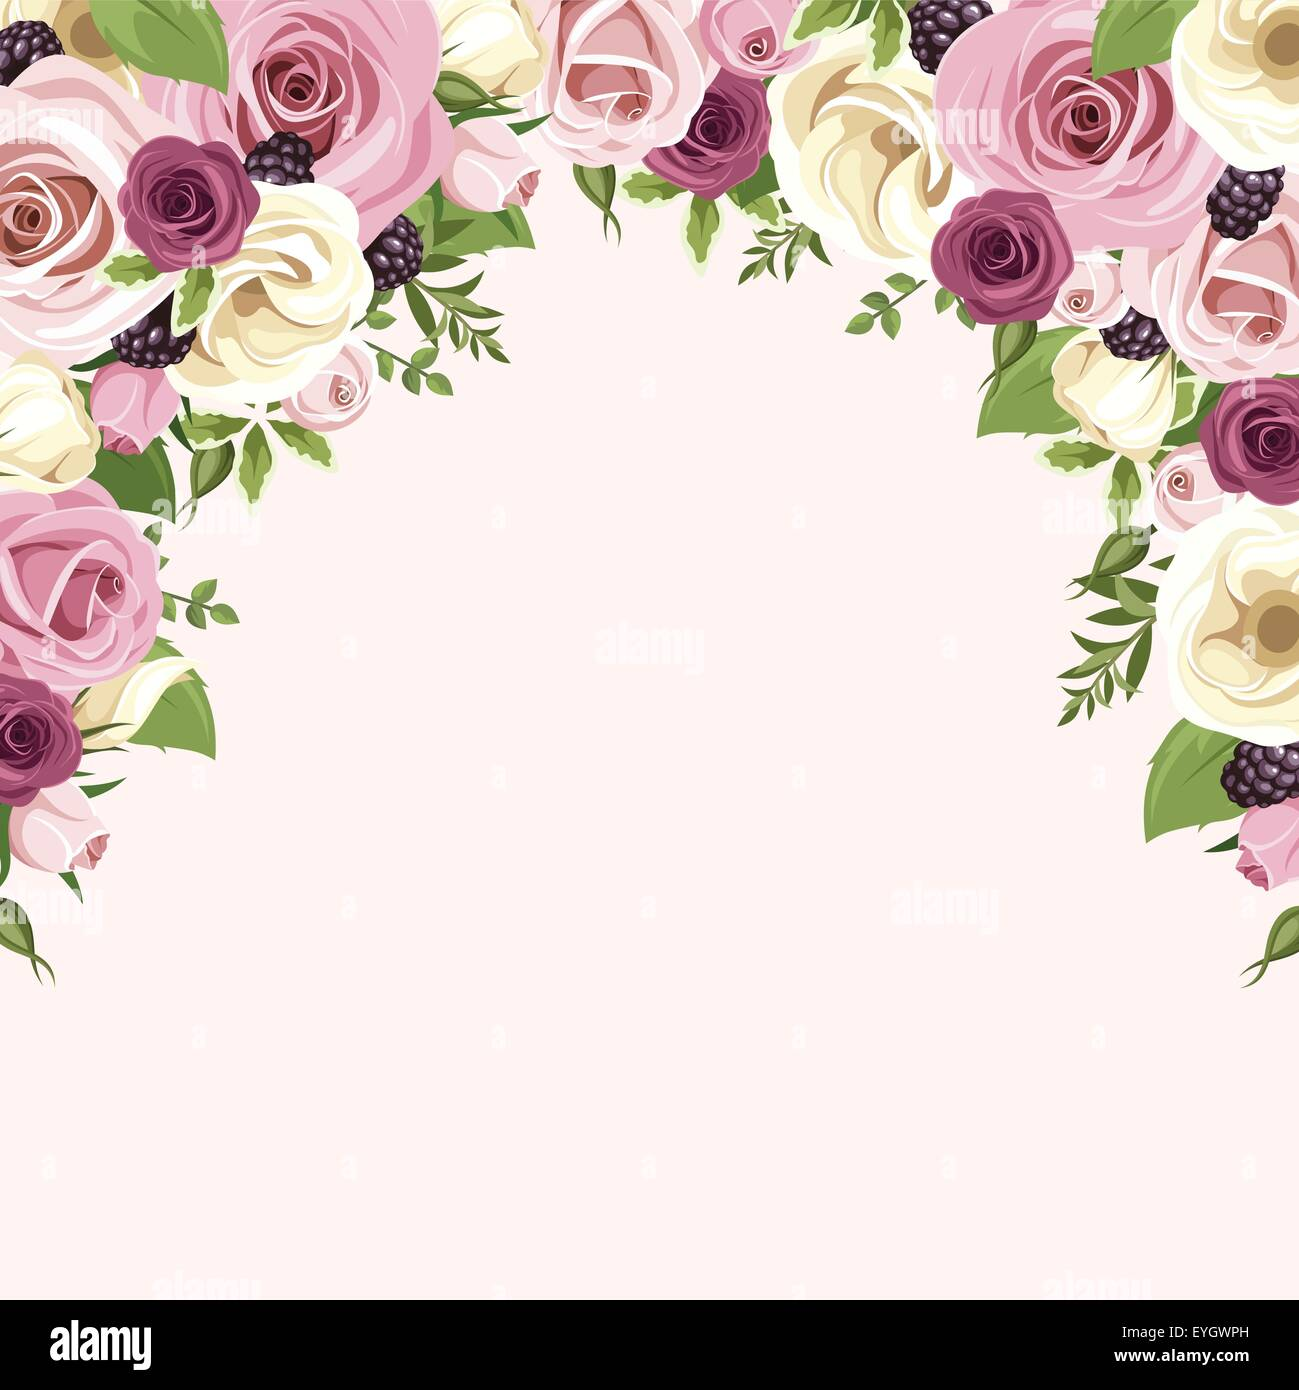 background with pink and white roses and lisianthus flowers vector stock vector art. Black Bedroom Furniture Sets. Home Design Ideas